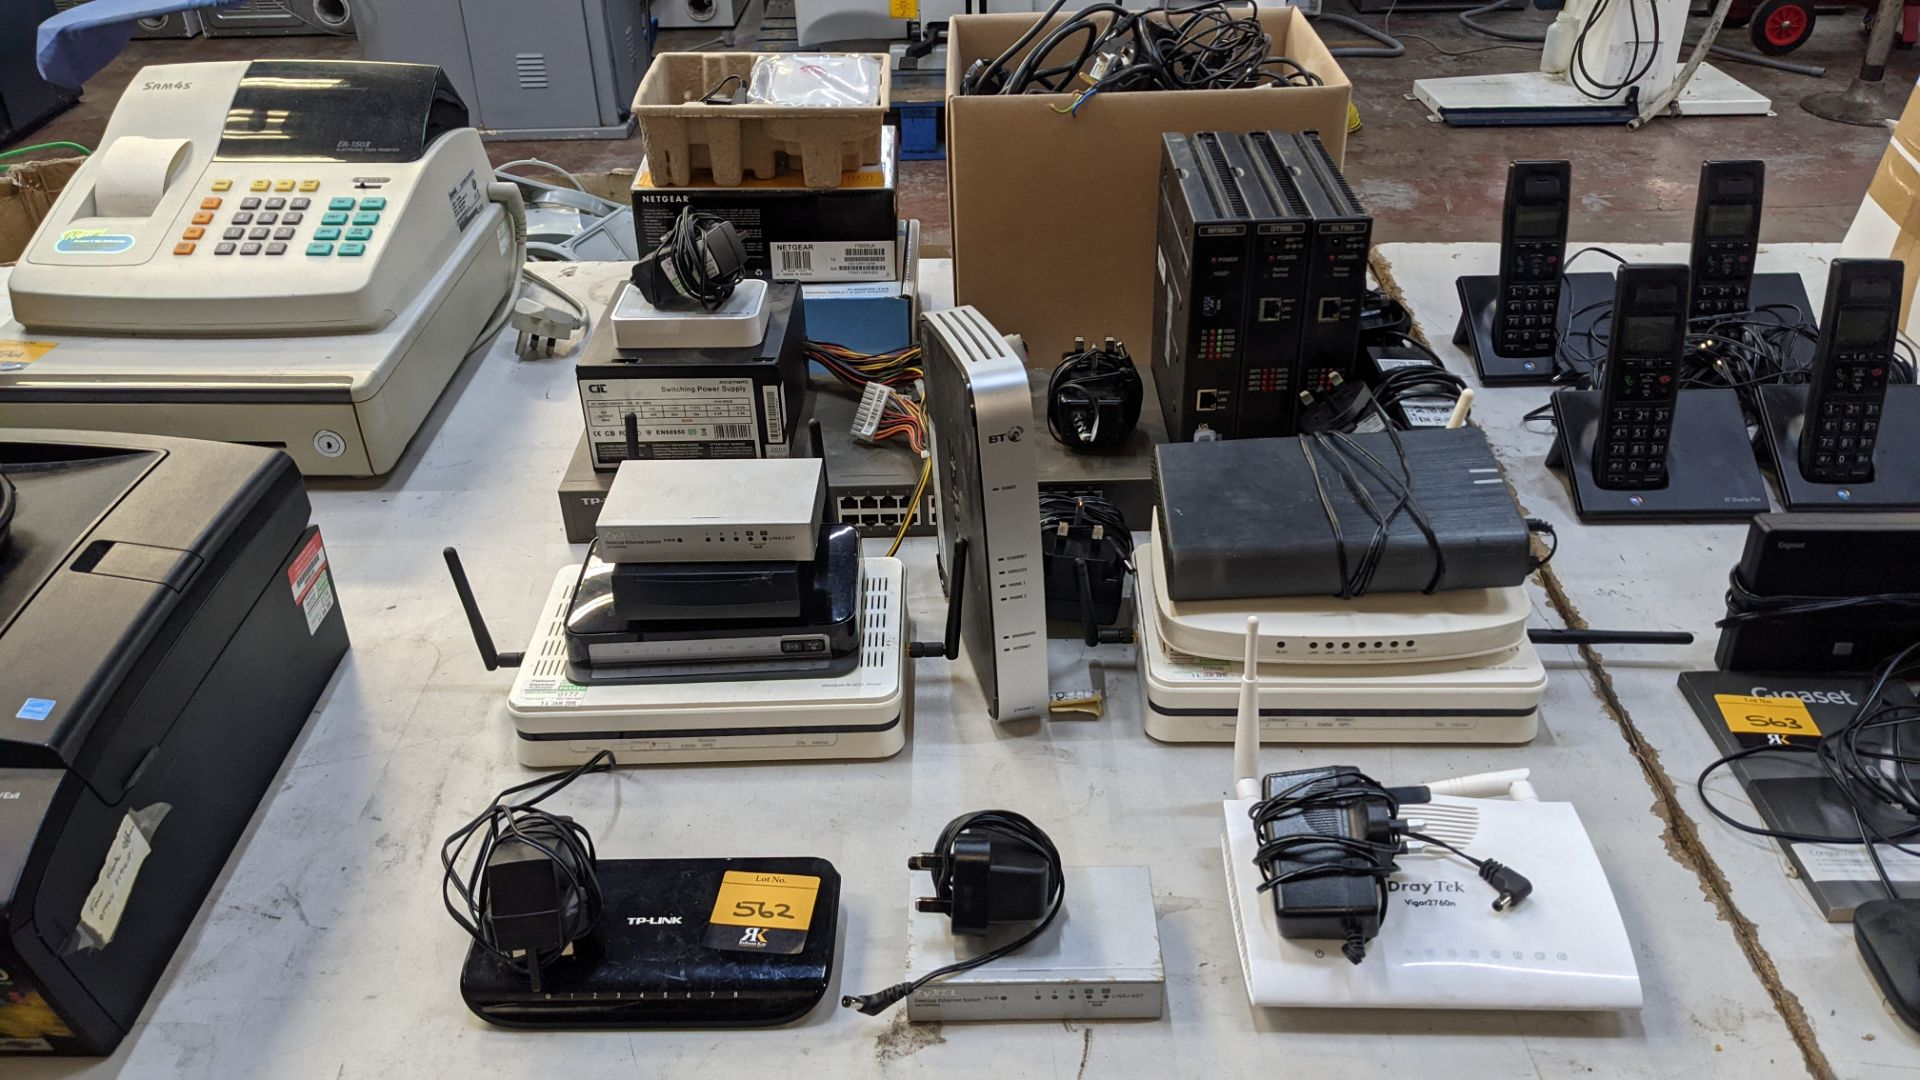 Very large quantity of assorted switches, hubs & other networking devices as pictured